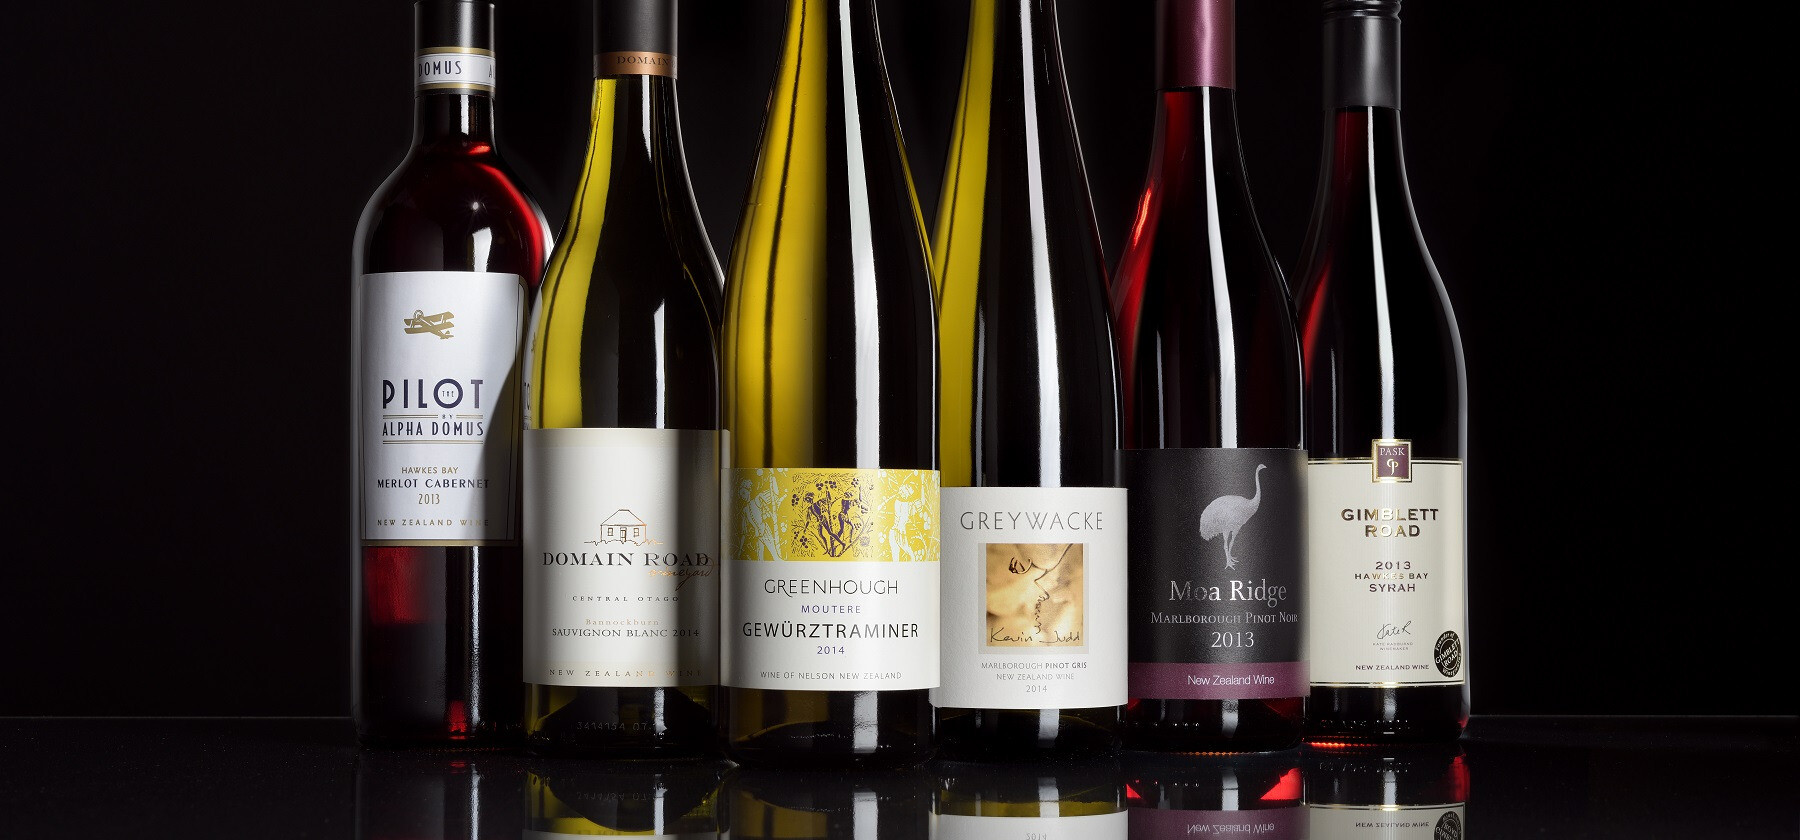 The Spectator Wines featured in